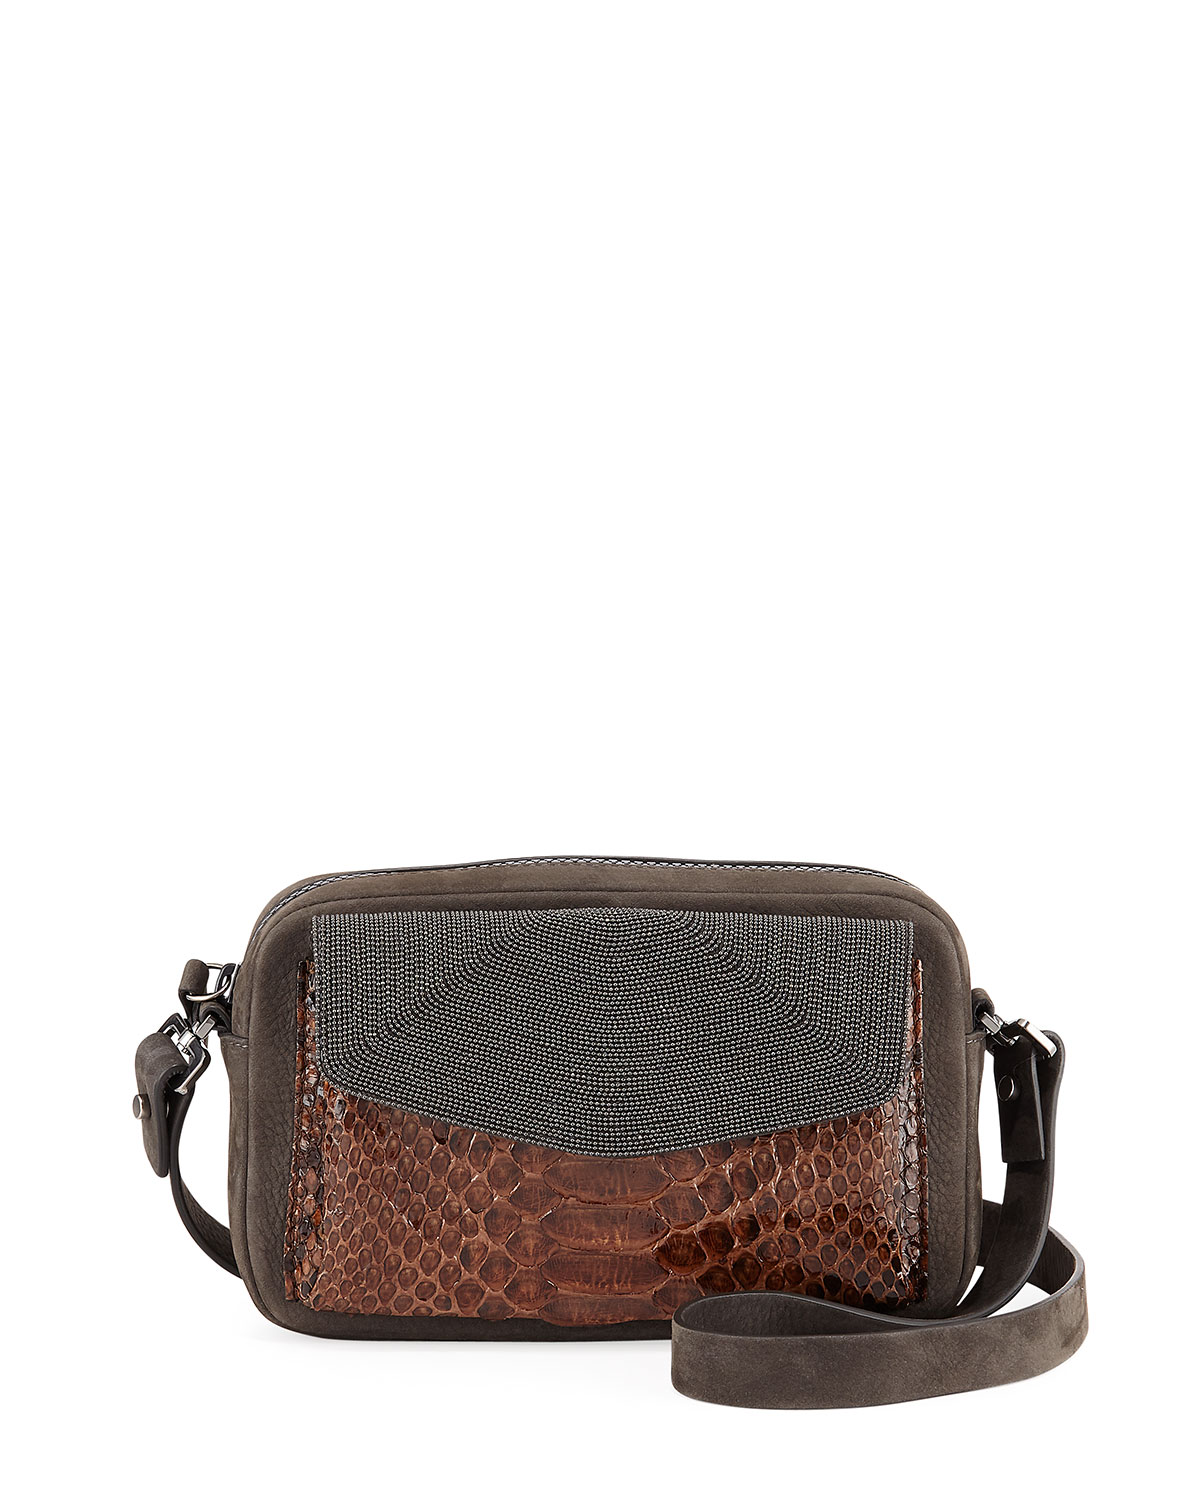 Leather & Snakeskin Pouch Crossbody Bag with Monili Trim